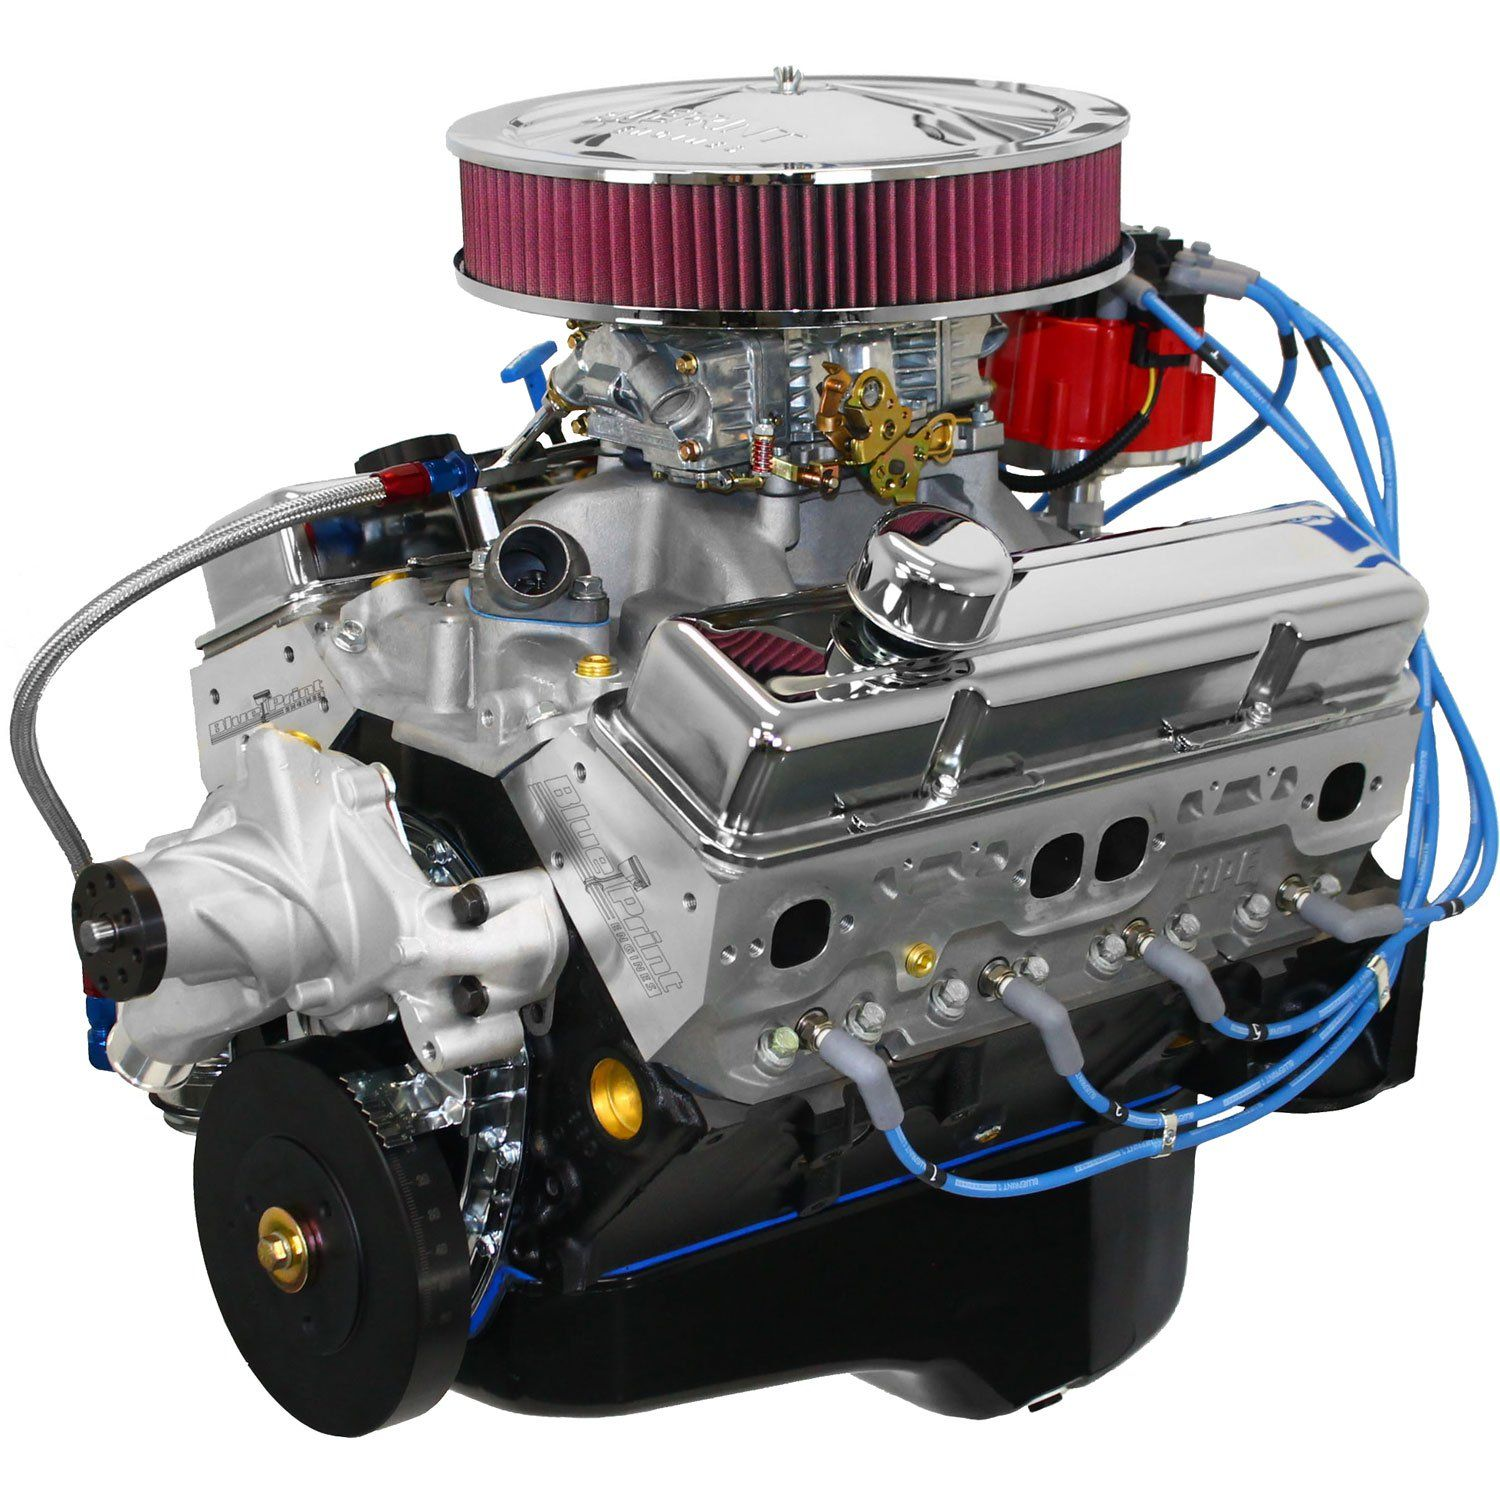 Blueprint Engines Sbc 383ci Dress Engine 430hp 450tq W Aluminum